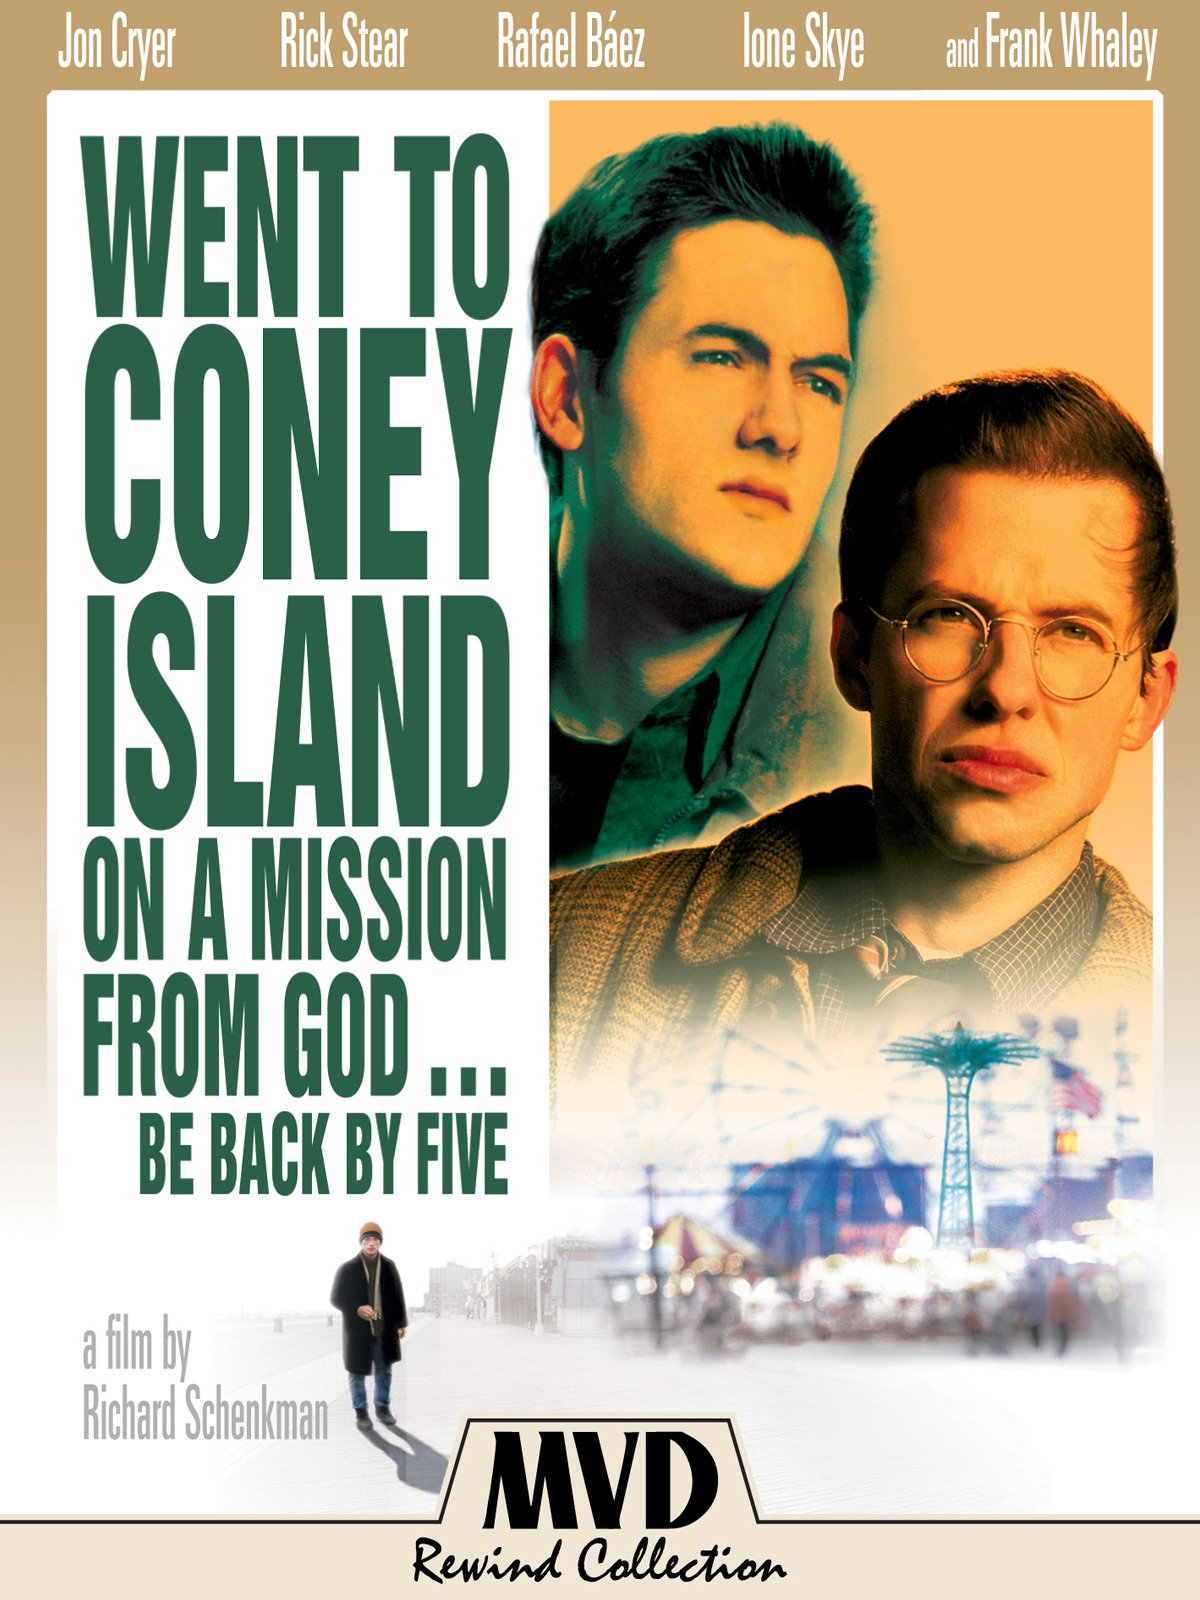 Went To Coney Island On A Mission From God. Be Back By Five on Amazon Prime Video UK